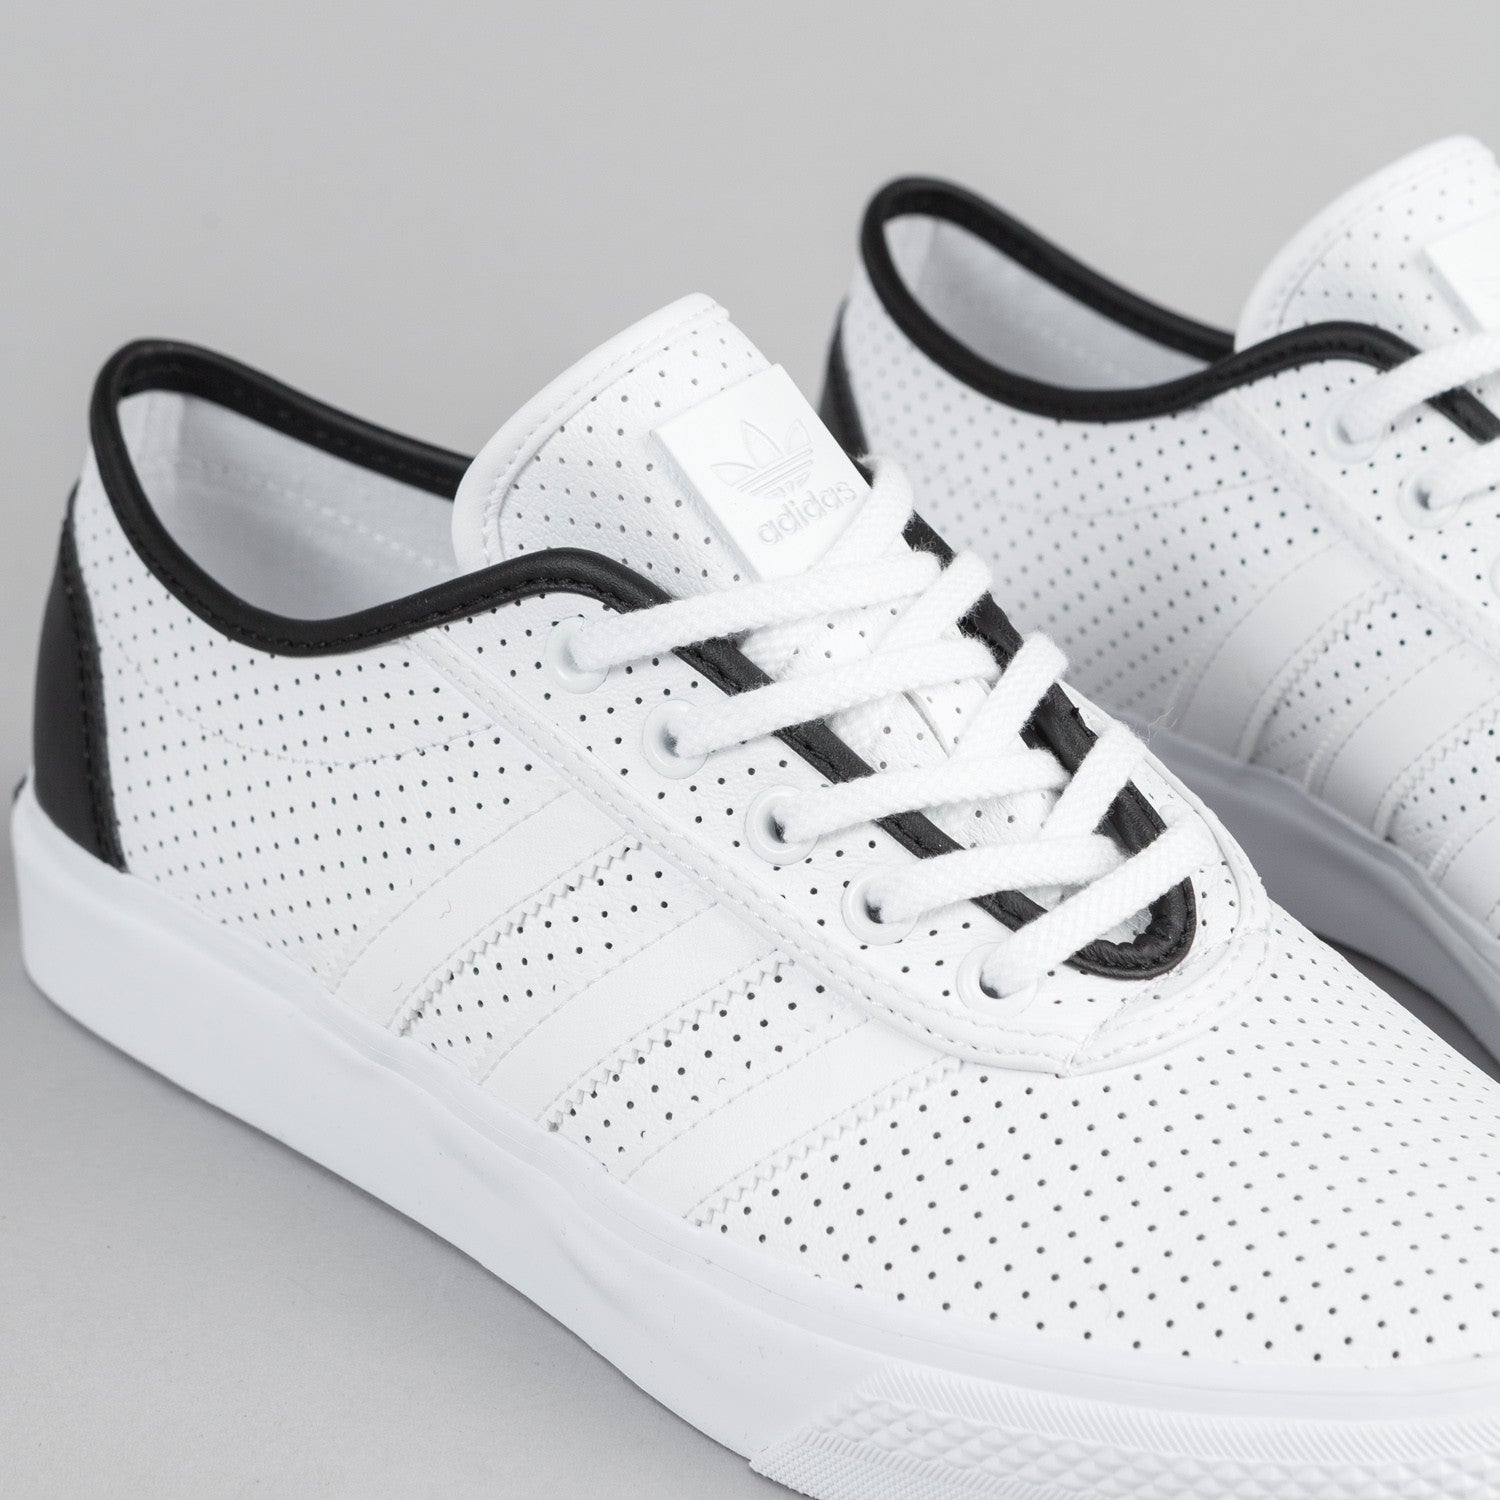 Adidas Adi-Ease Classified Shoes - FTW White / Core Black / FTW White